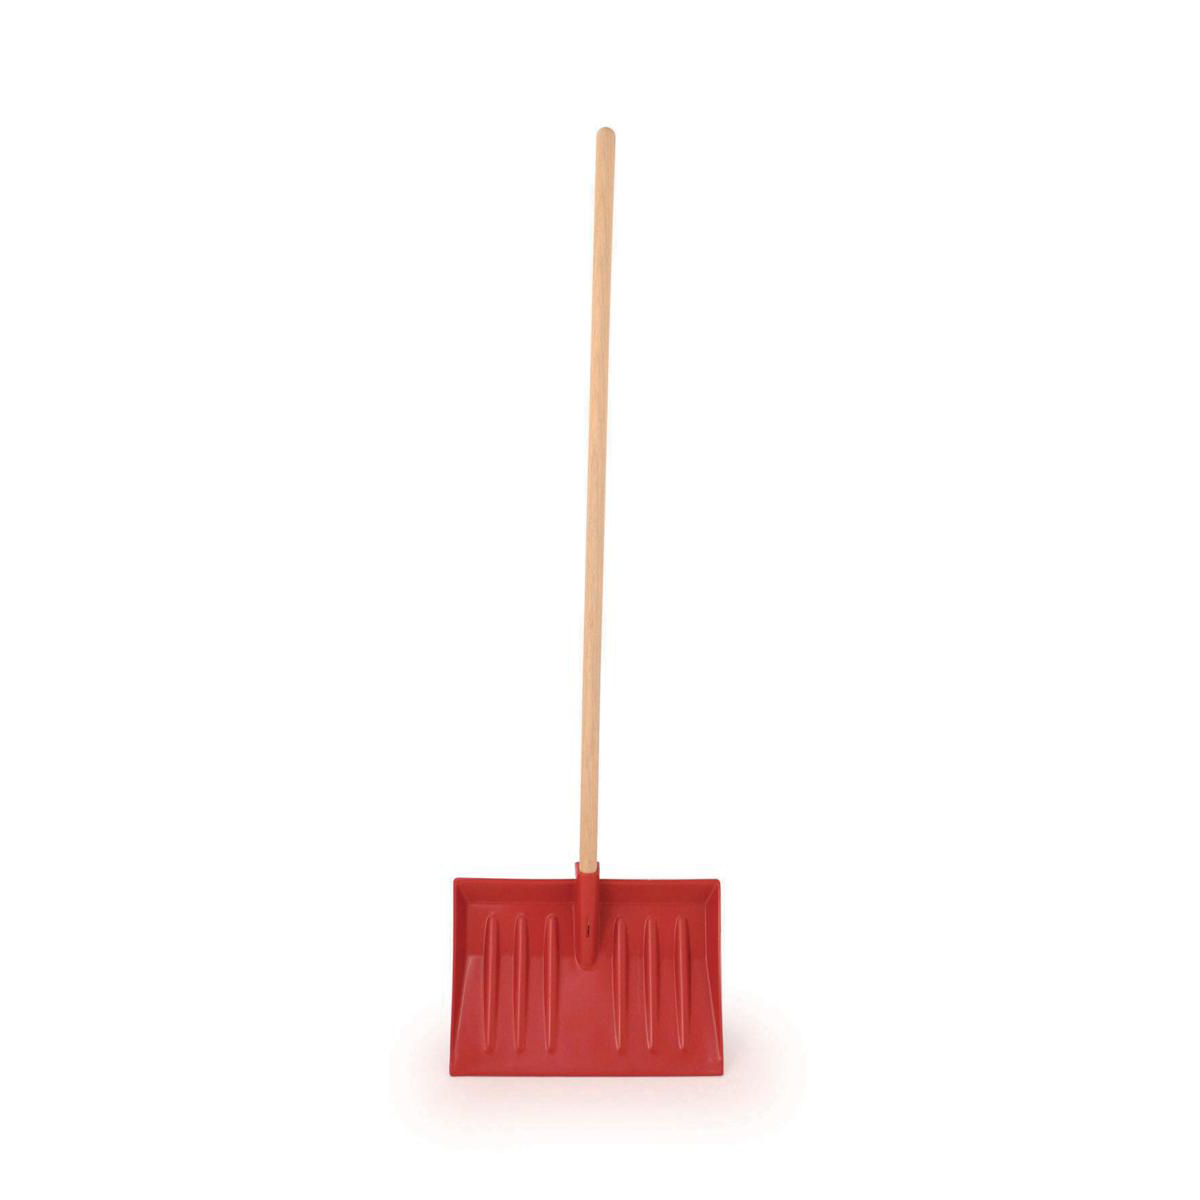 De-Icing Supplies Heavy Duty Shovel Polypropylene Blade 1220mm Wooden Handle